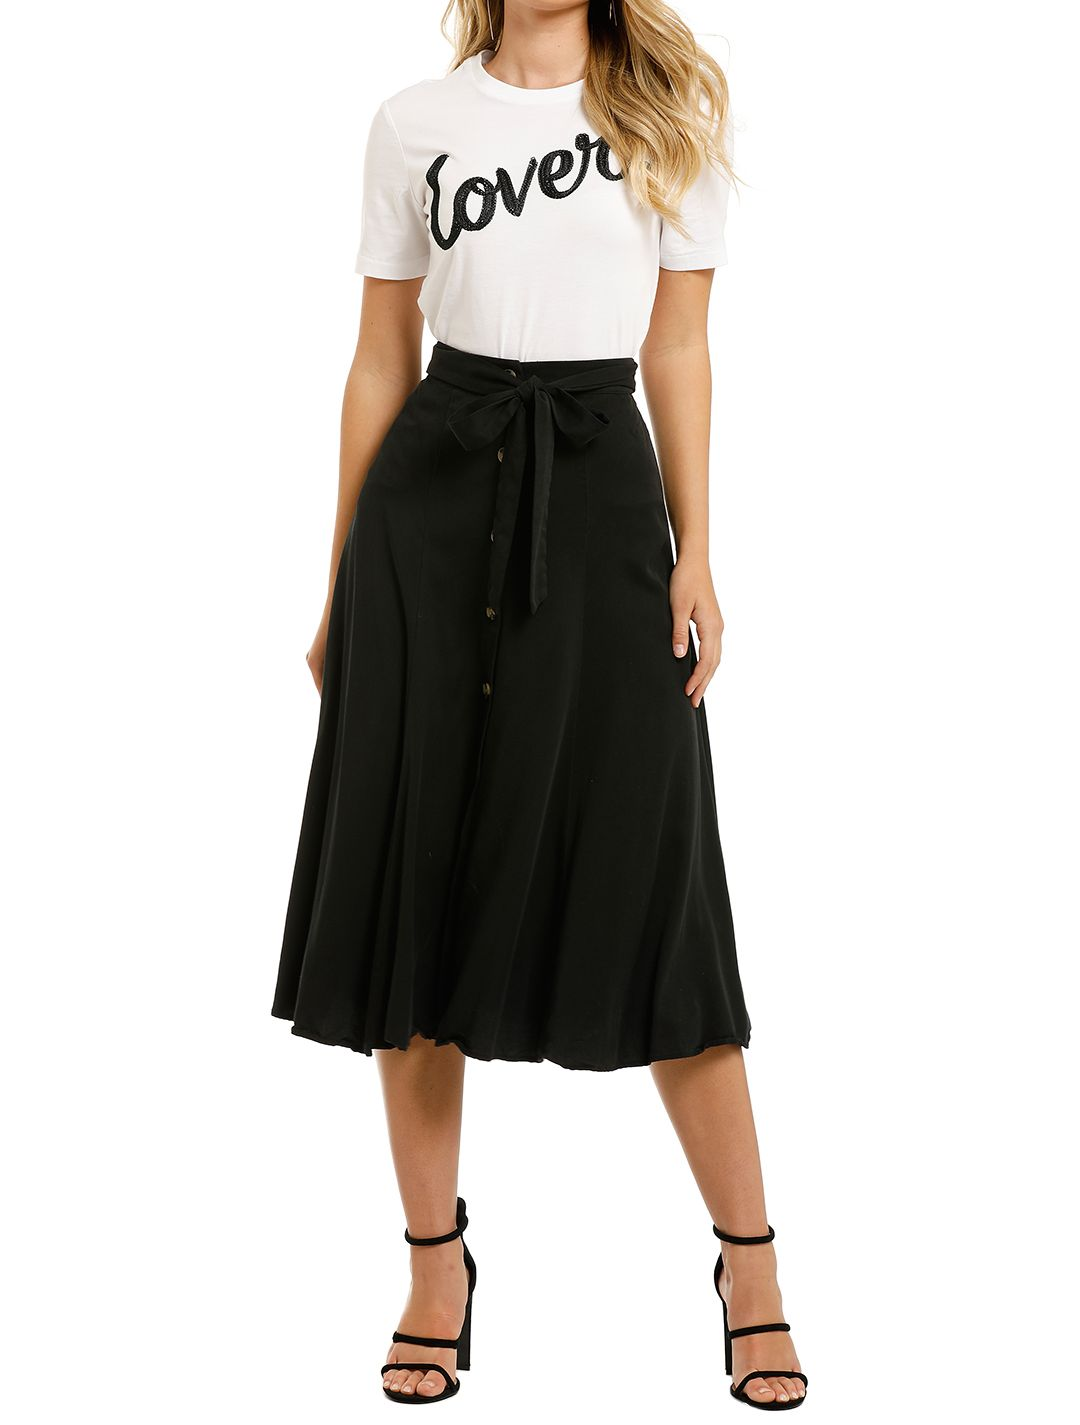 Lover-Signature-Tee-White-Front